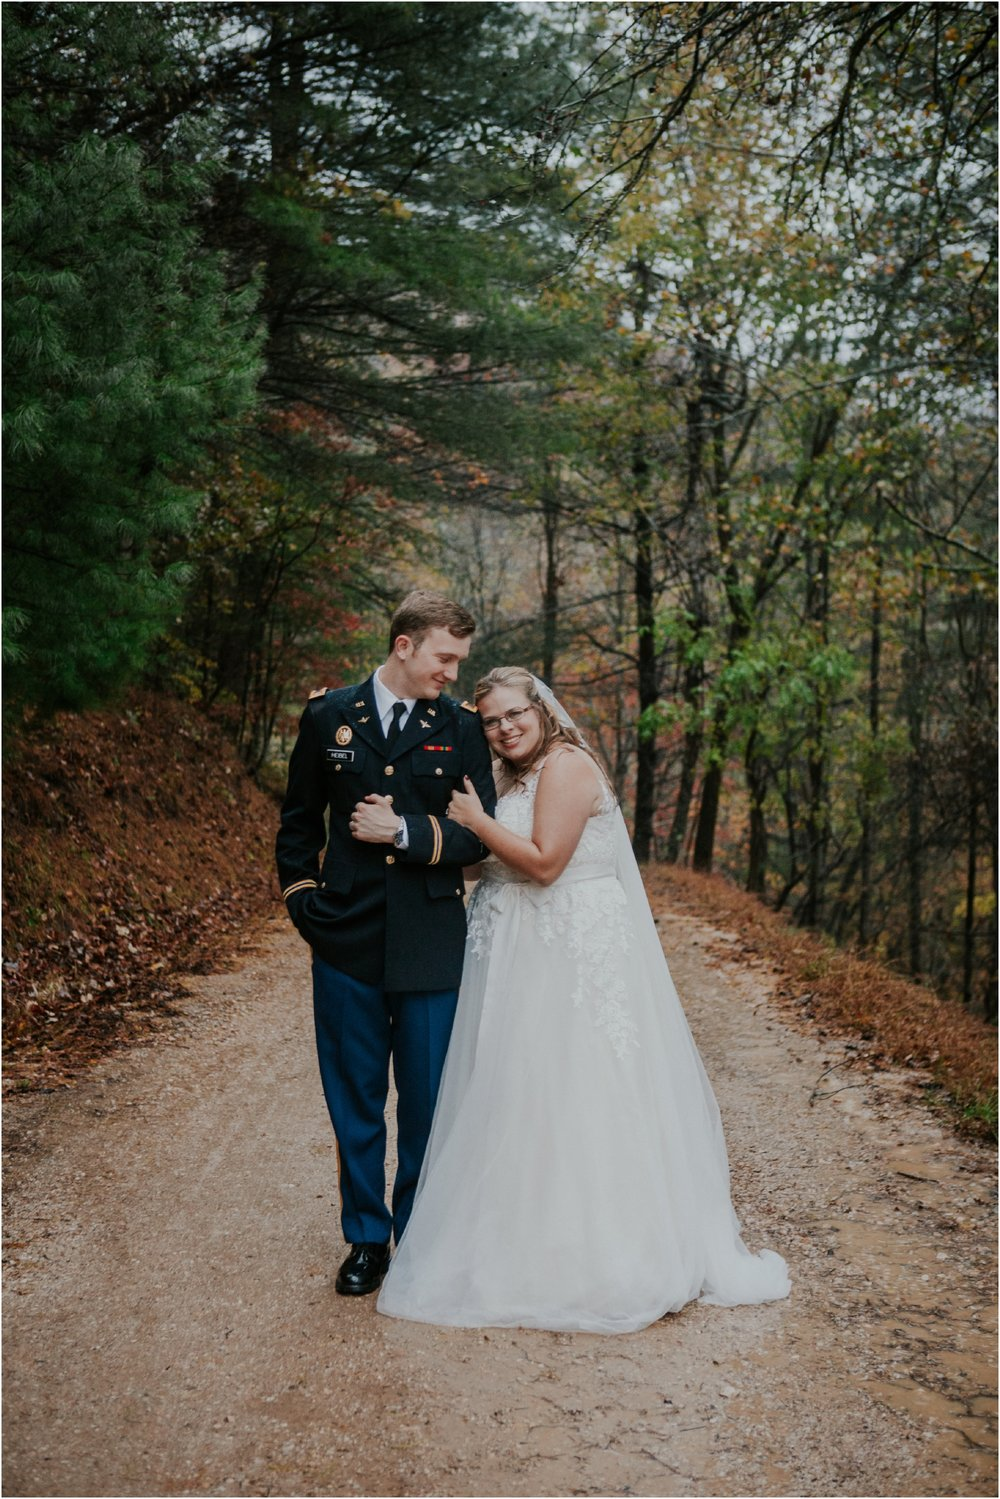 Sugar-Hollow-Retreat-Butler-Elizabethton-Tennessee-Rustic-Rainy-Wedding-Adventurous-Couple_0114.jpg